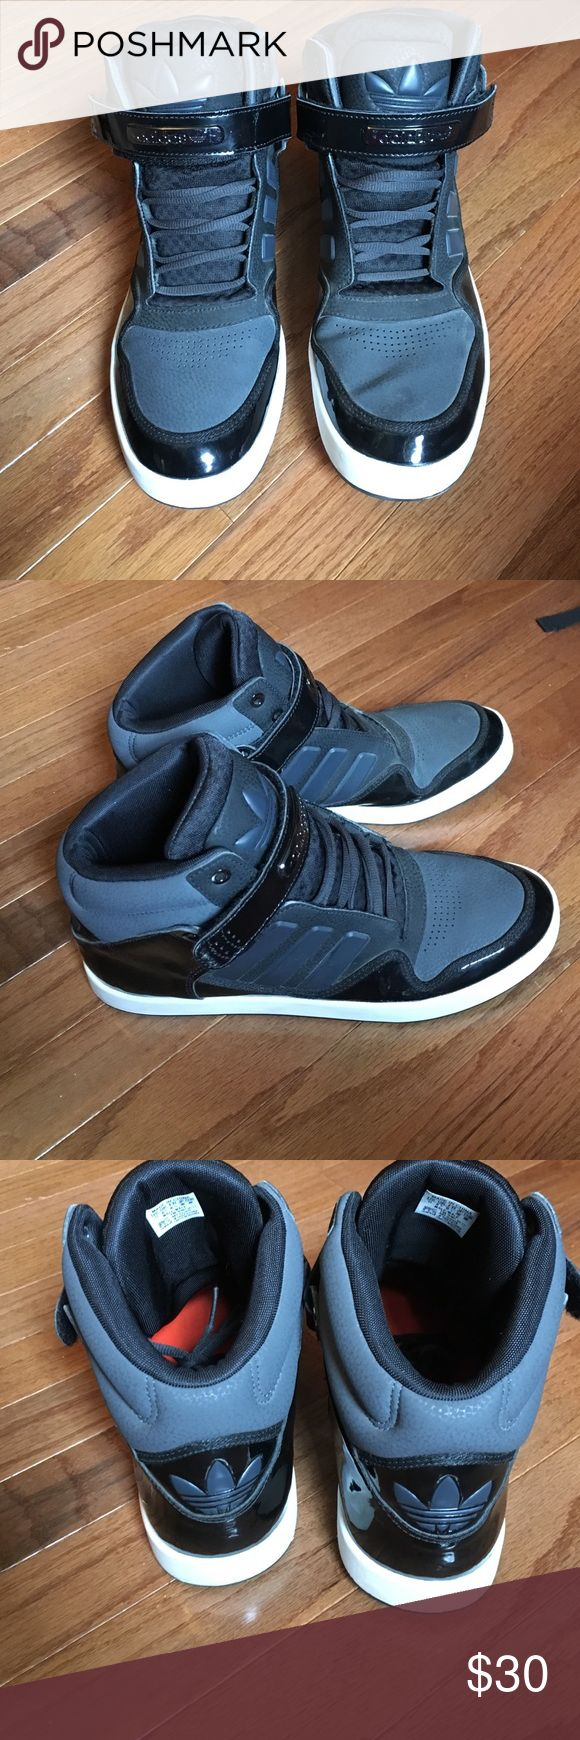 Adidas shoes Slight creasing on toe box, light scuffs on midsole. Otherwise a new shoe Adidas Shoes Sneakers